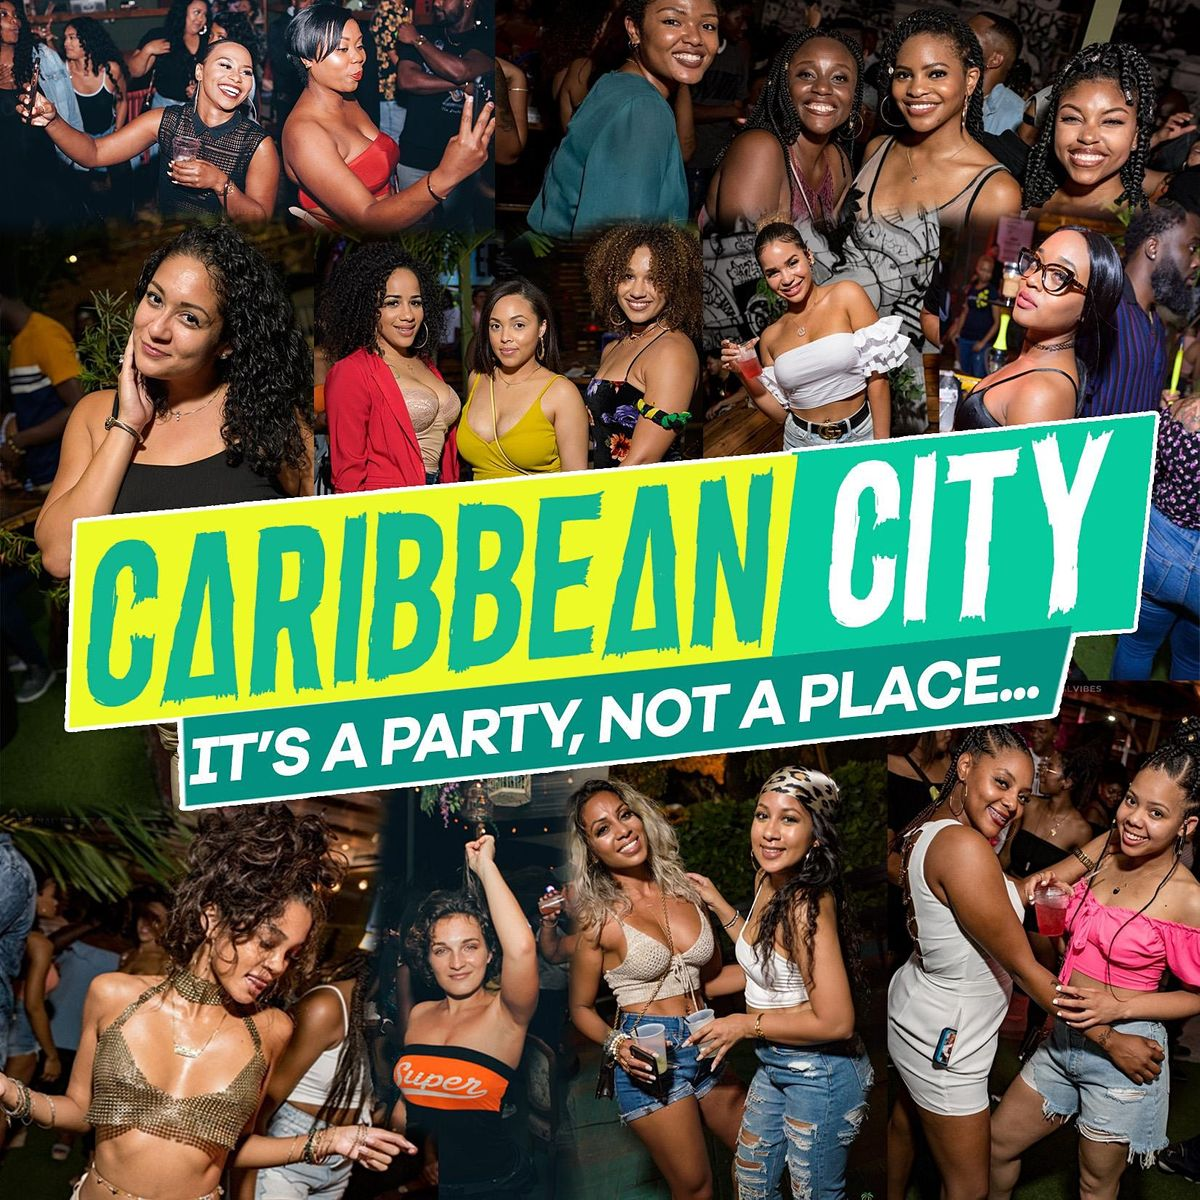 CARIBBEAN CITY CARNIVAL WEEKEND - LADIES FREE ALL NIGHT (SOCA & DANCEHALL), 9 October | Event in Sunrise